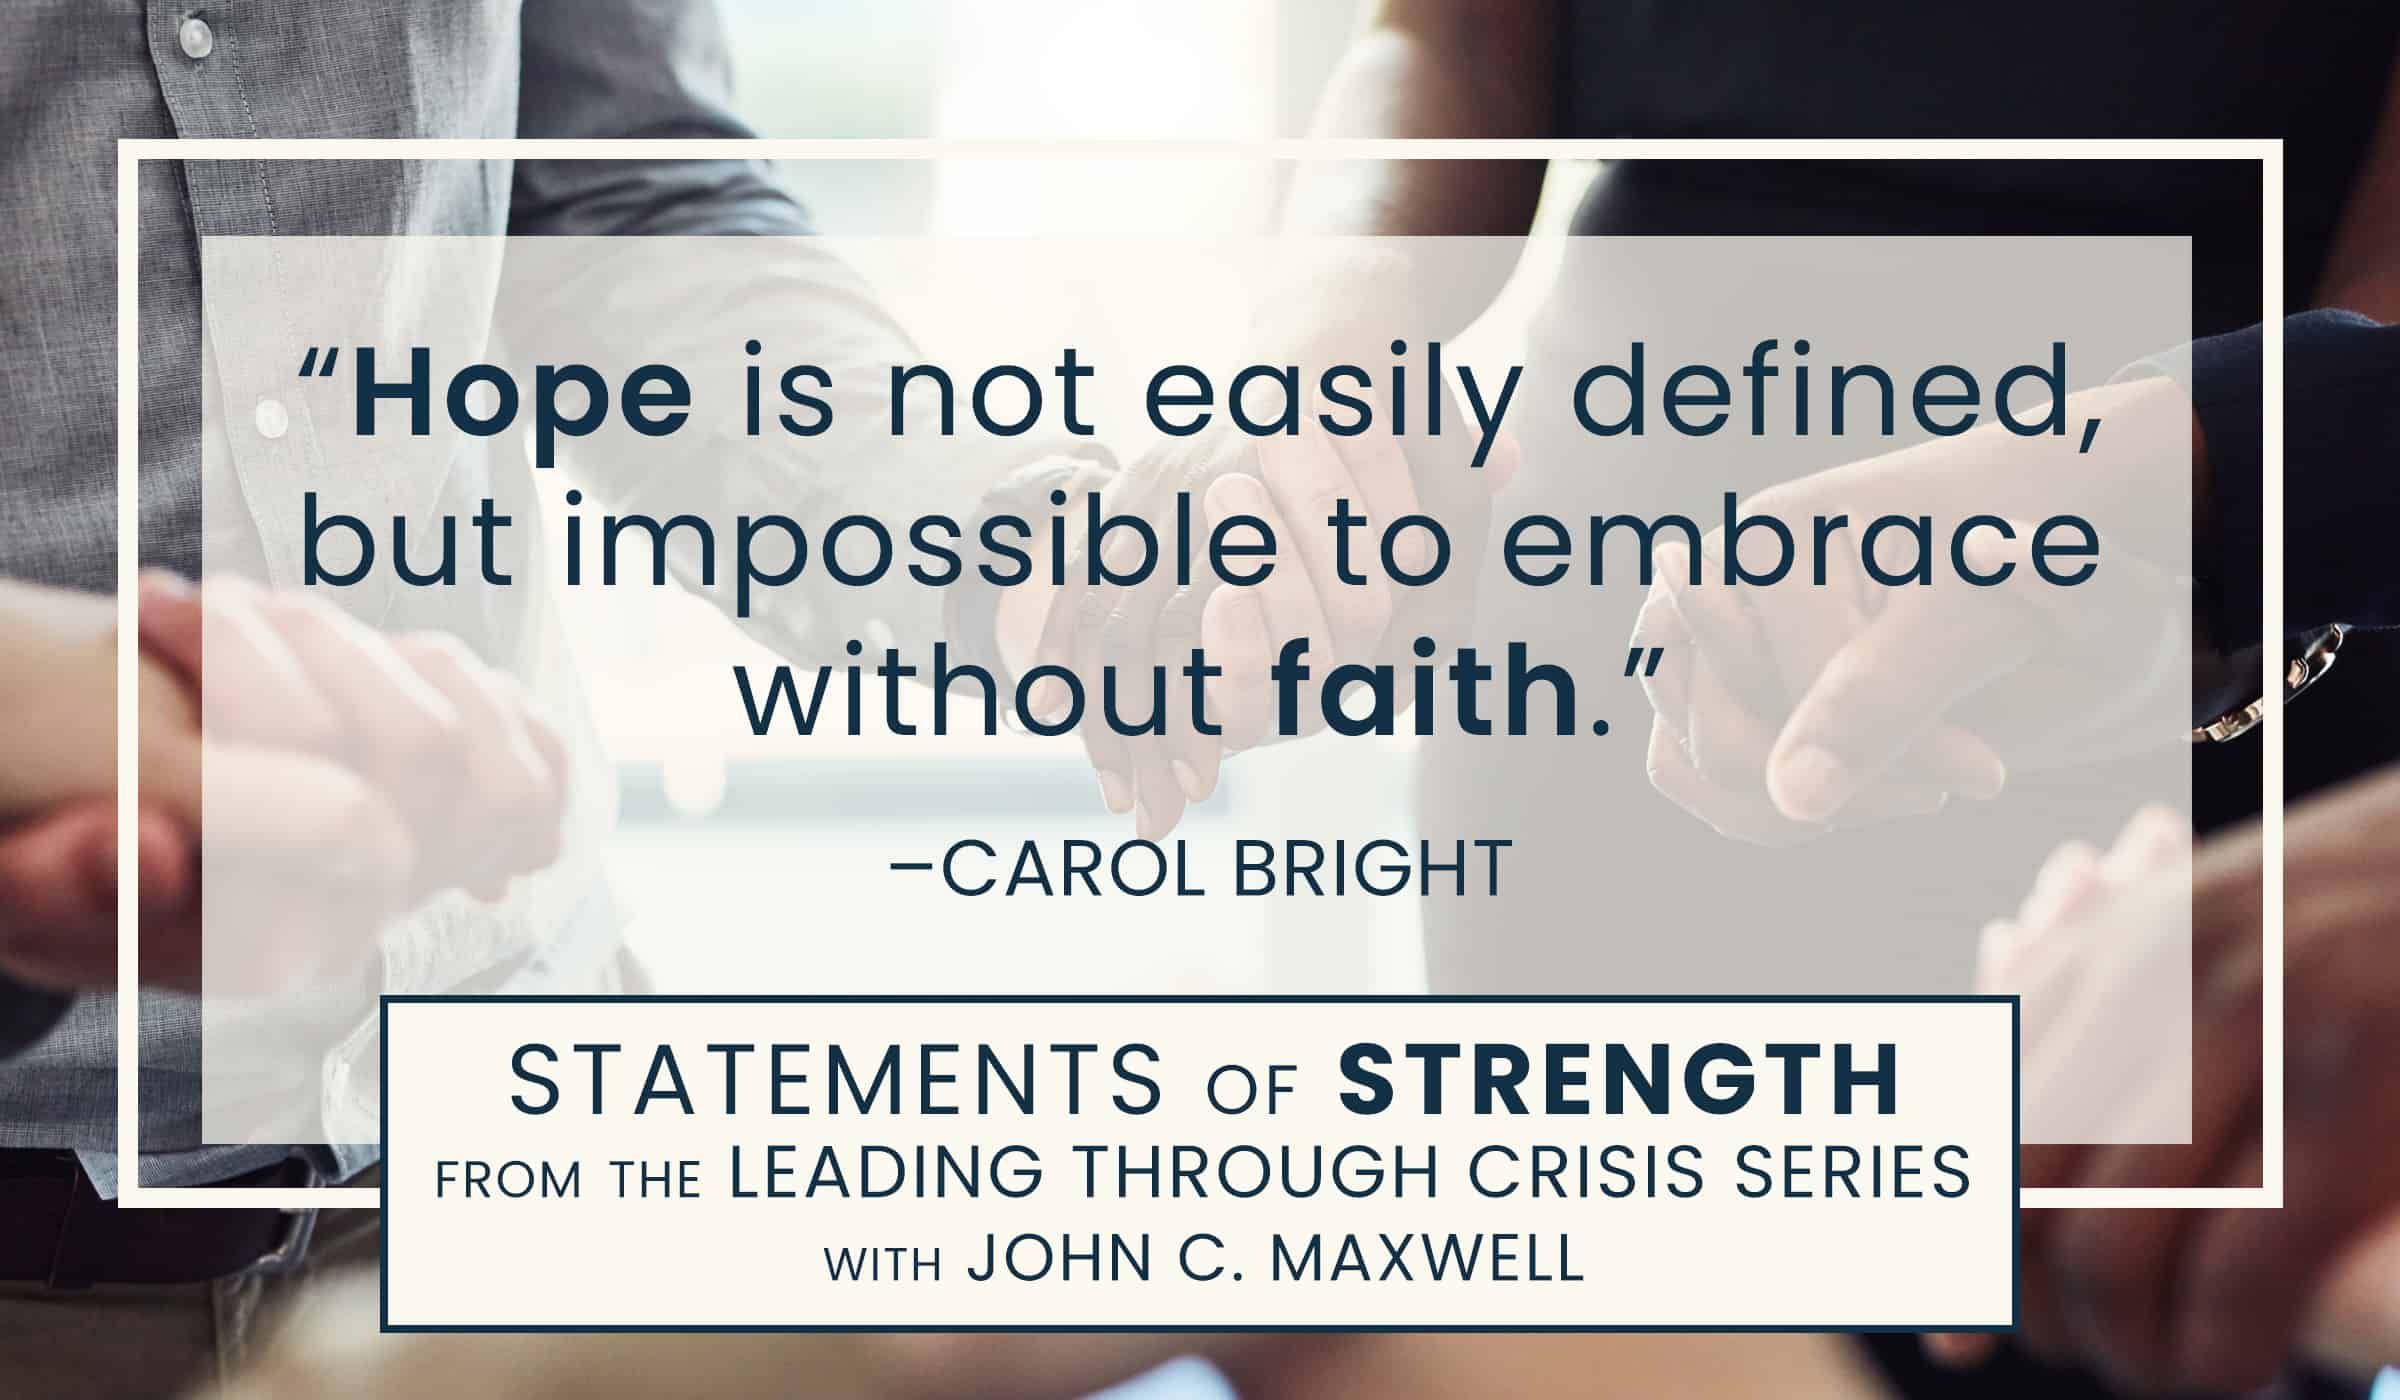 image of quote picture with quotation from Carol Bright